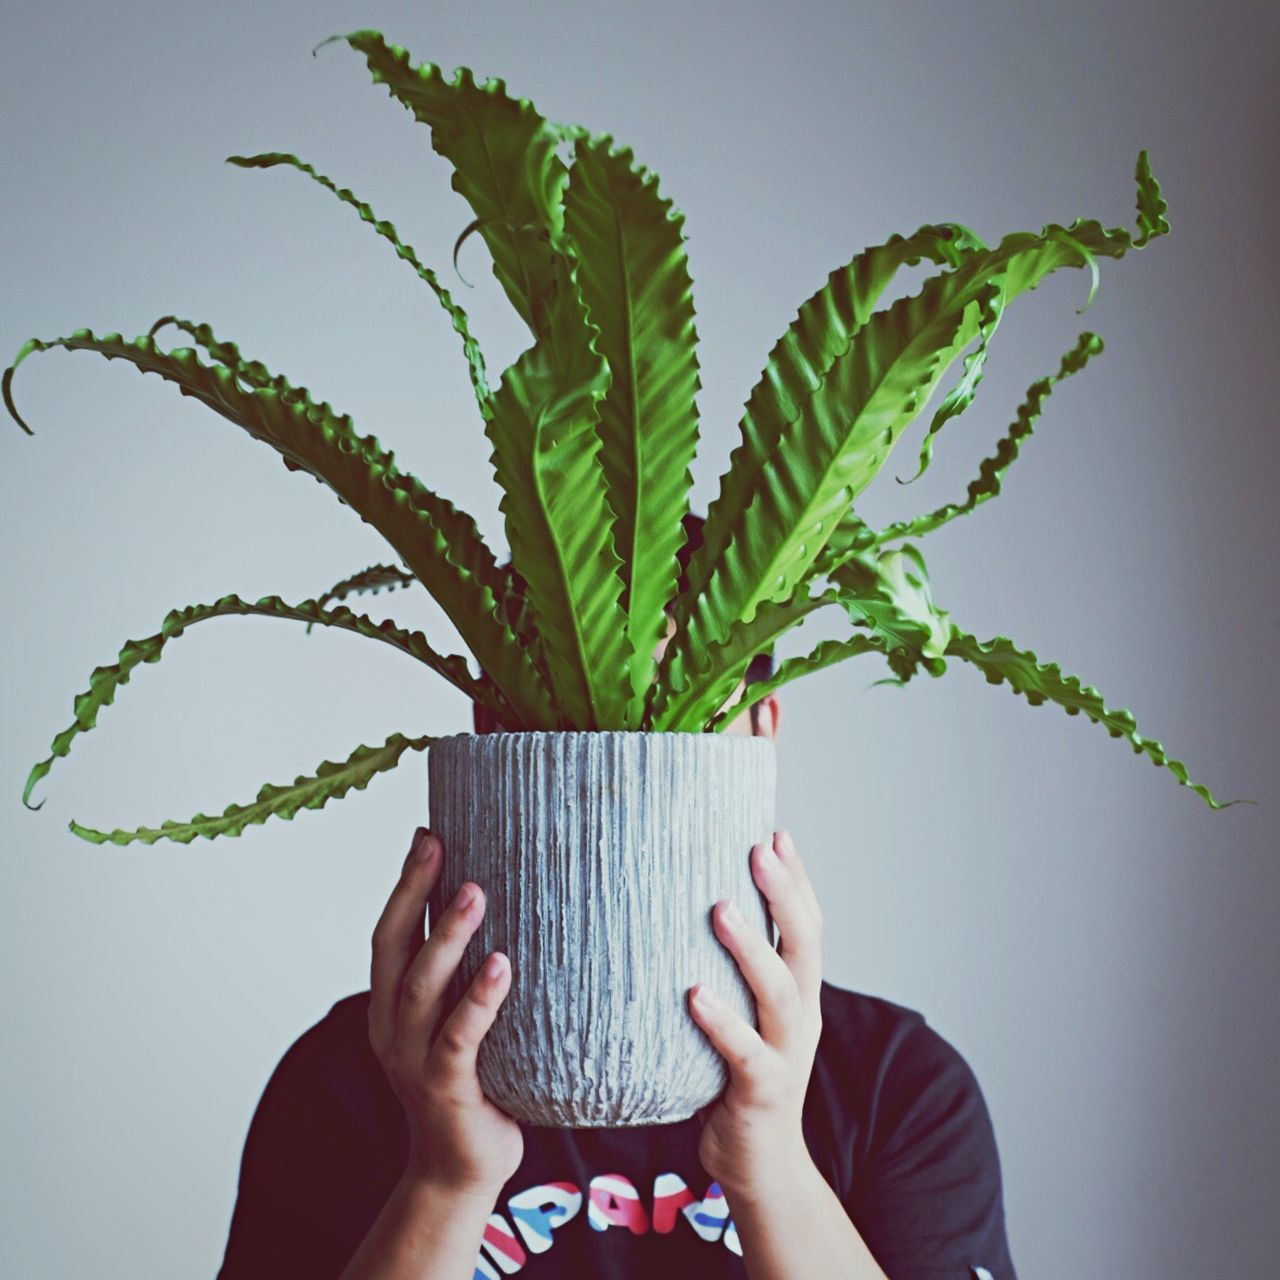 Beautiful stock photos of environment, plant, holding, green color, growth